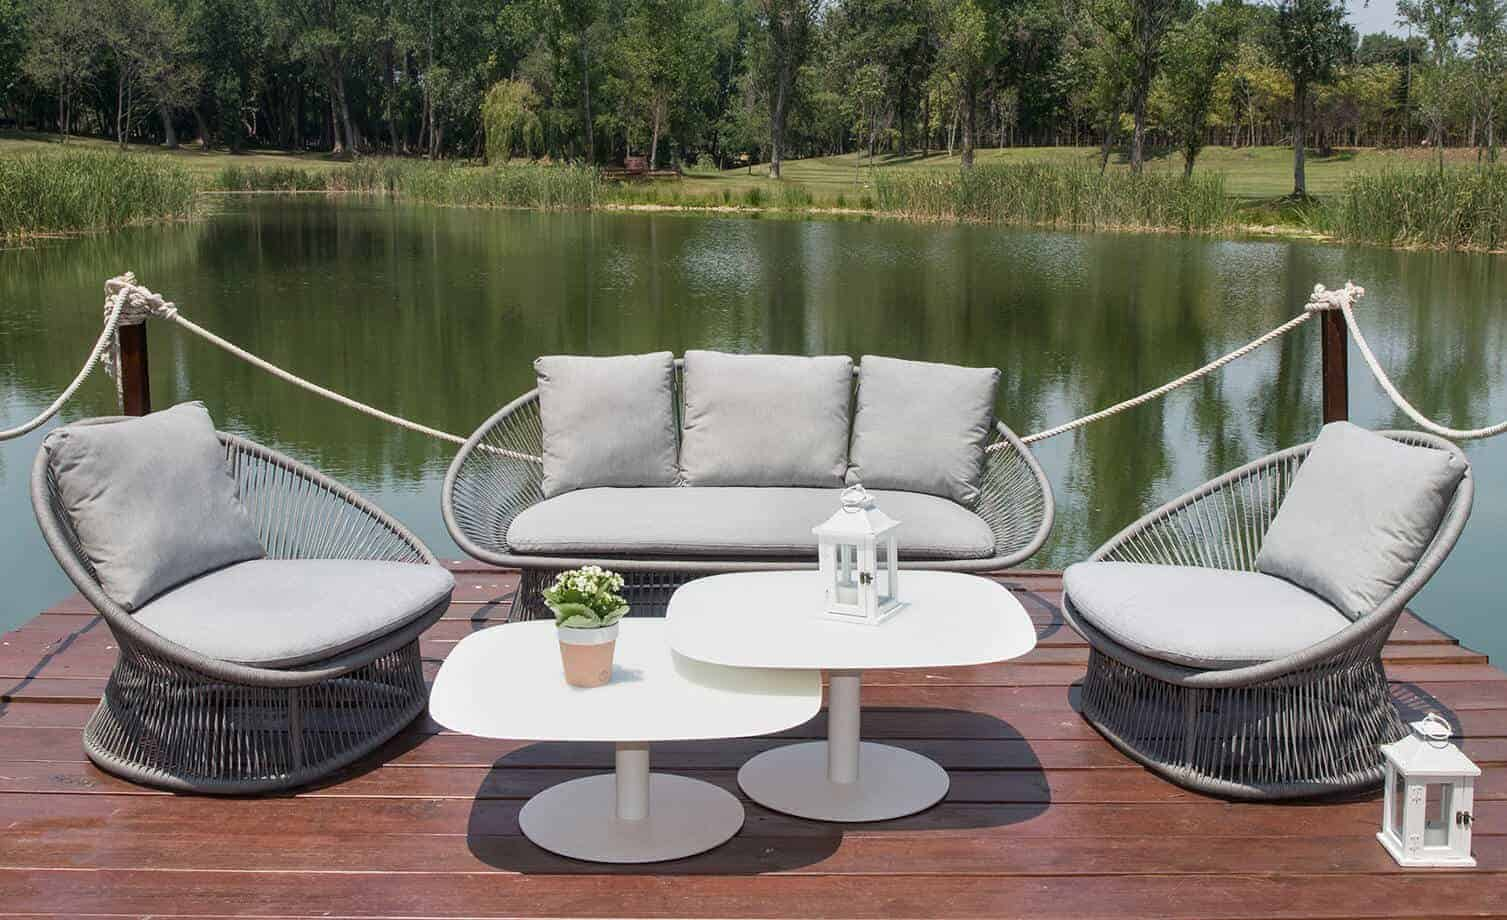 Spade alu round rope collection outdoor furniture for sale dublin ireland